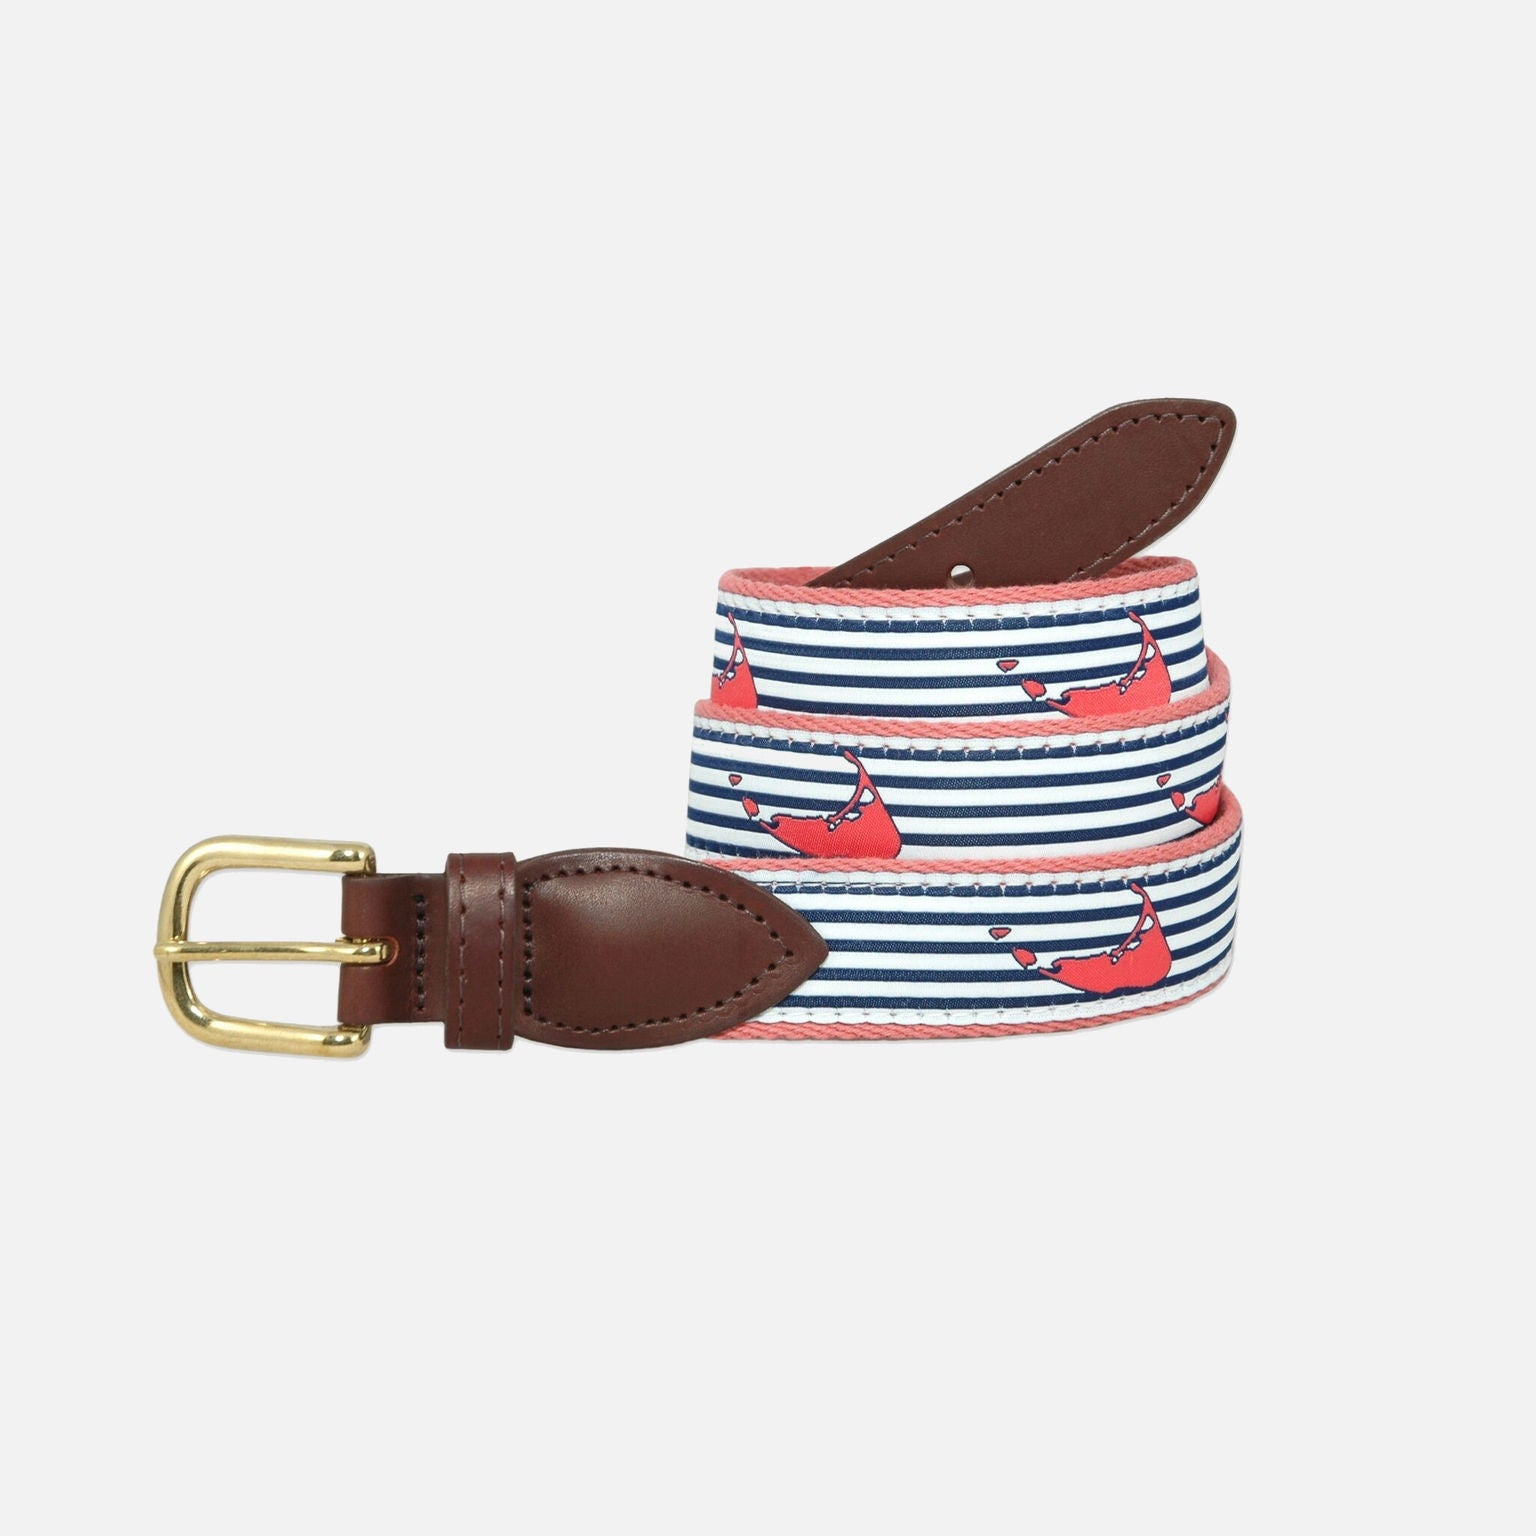 YRI Men's Ribbon Belt Nantucket Island - Seersucker